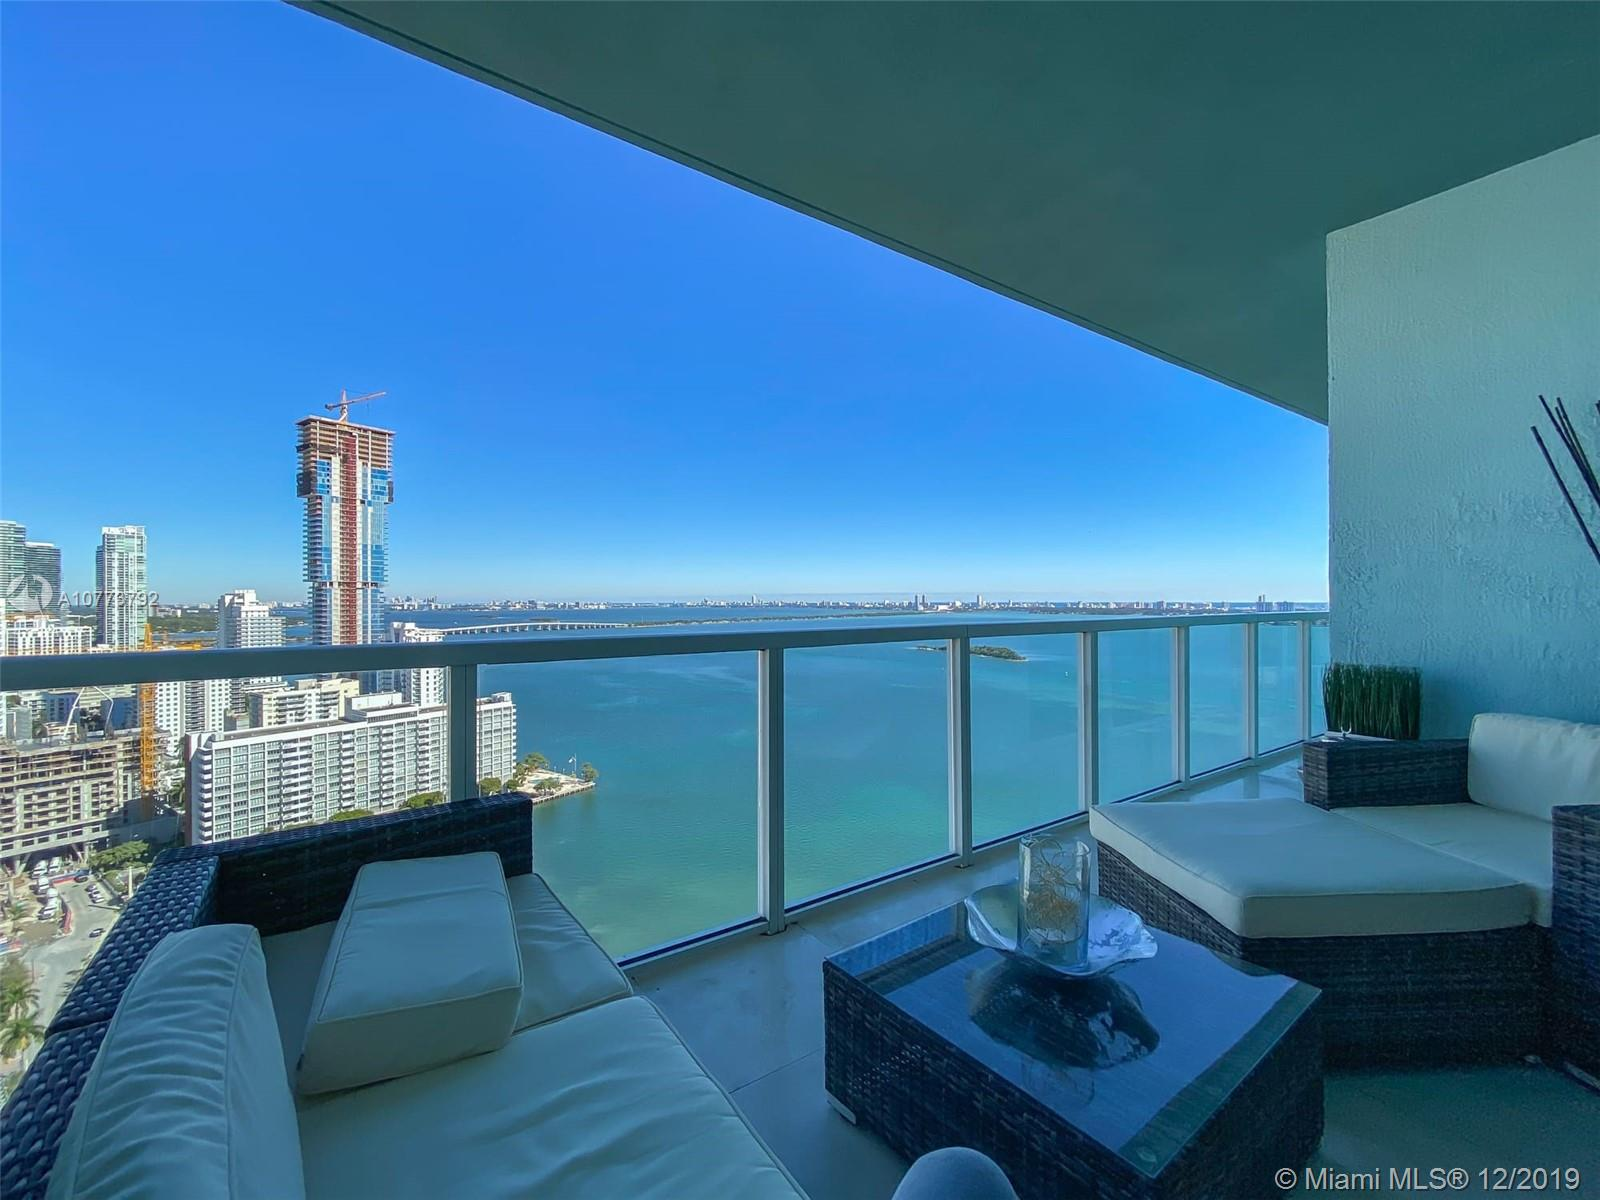 Seller Motivated! Spectacular 2/2.5 +Den with an amazing view of the Bay and surrounding areas. Unit has 24x24 Cream Marfil Marble flooring and stainless steel appliances. Building amenities include 2 pools, 2 story gym, sauna, library, theatre room and much more. Easy commute to South Beach, Midtown, Downtown Miami, Brickell and Airport.